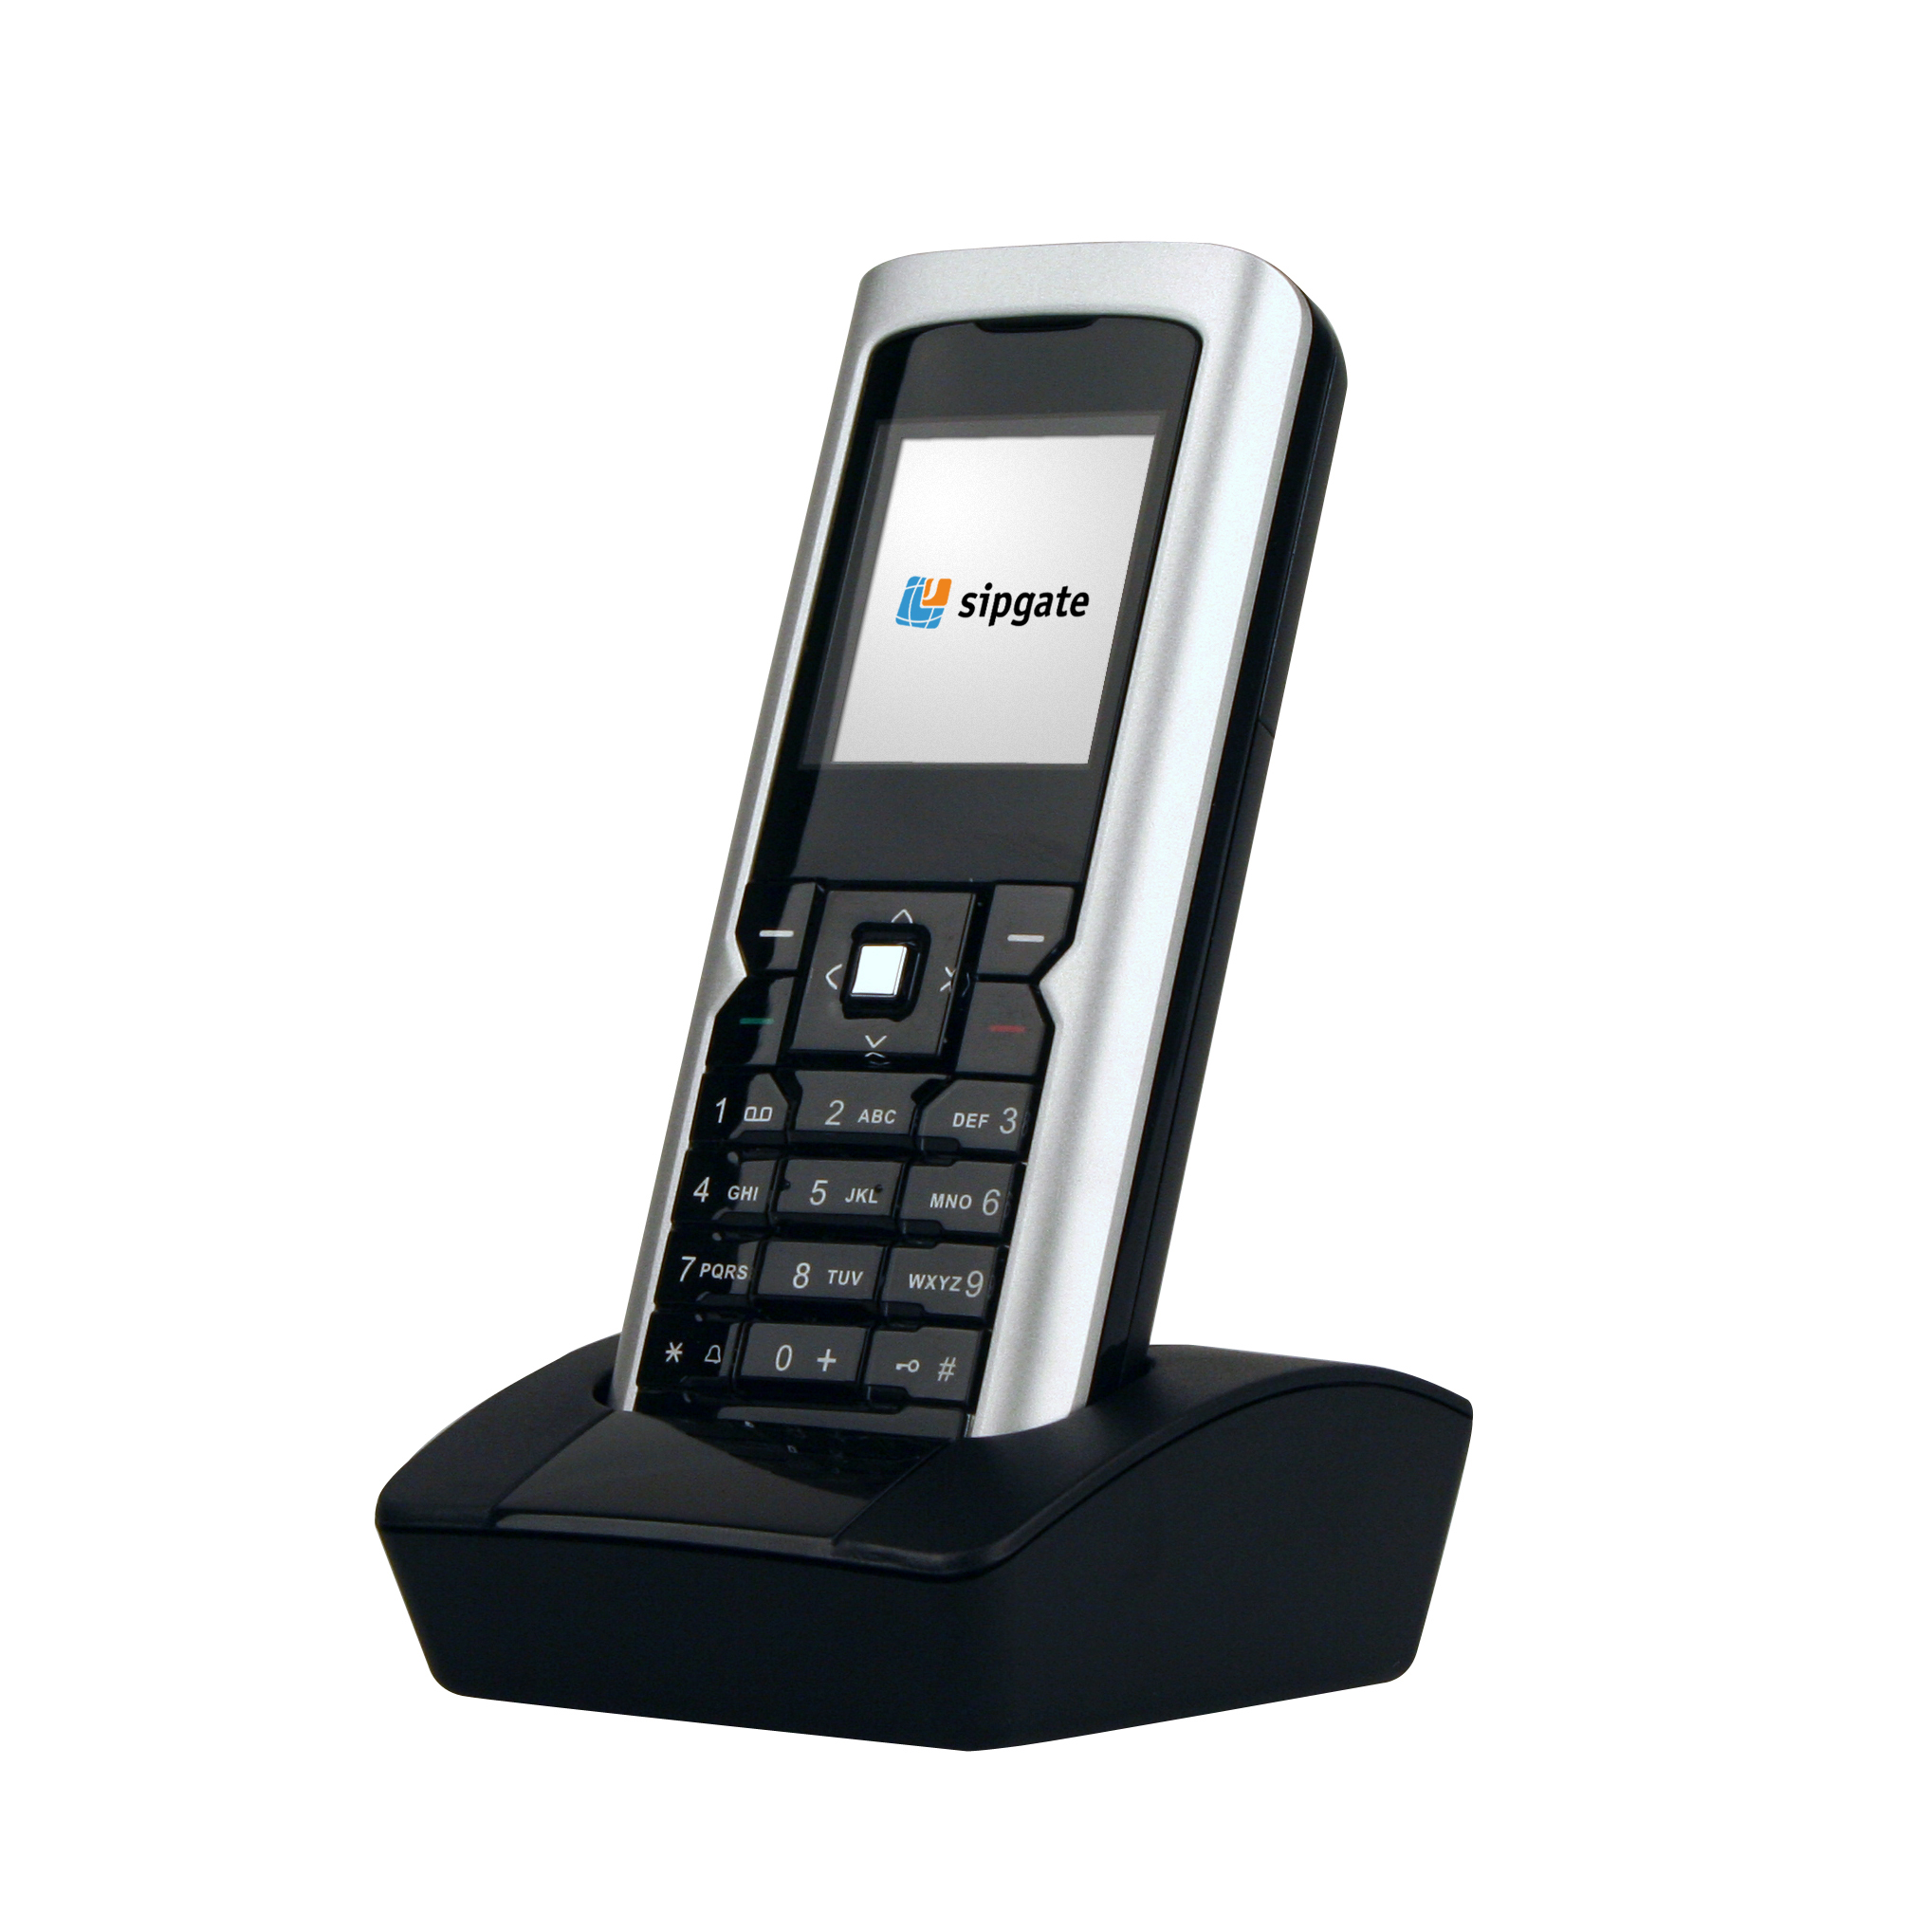 New Pirelli DP-L10 WiFi Triband Phone